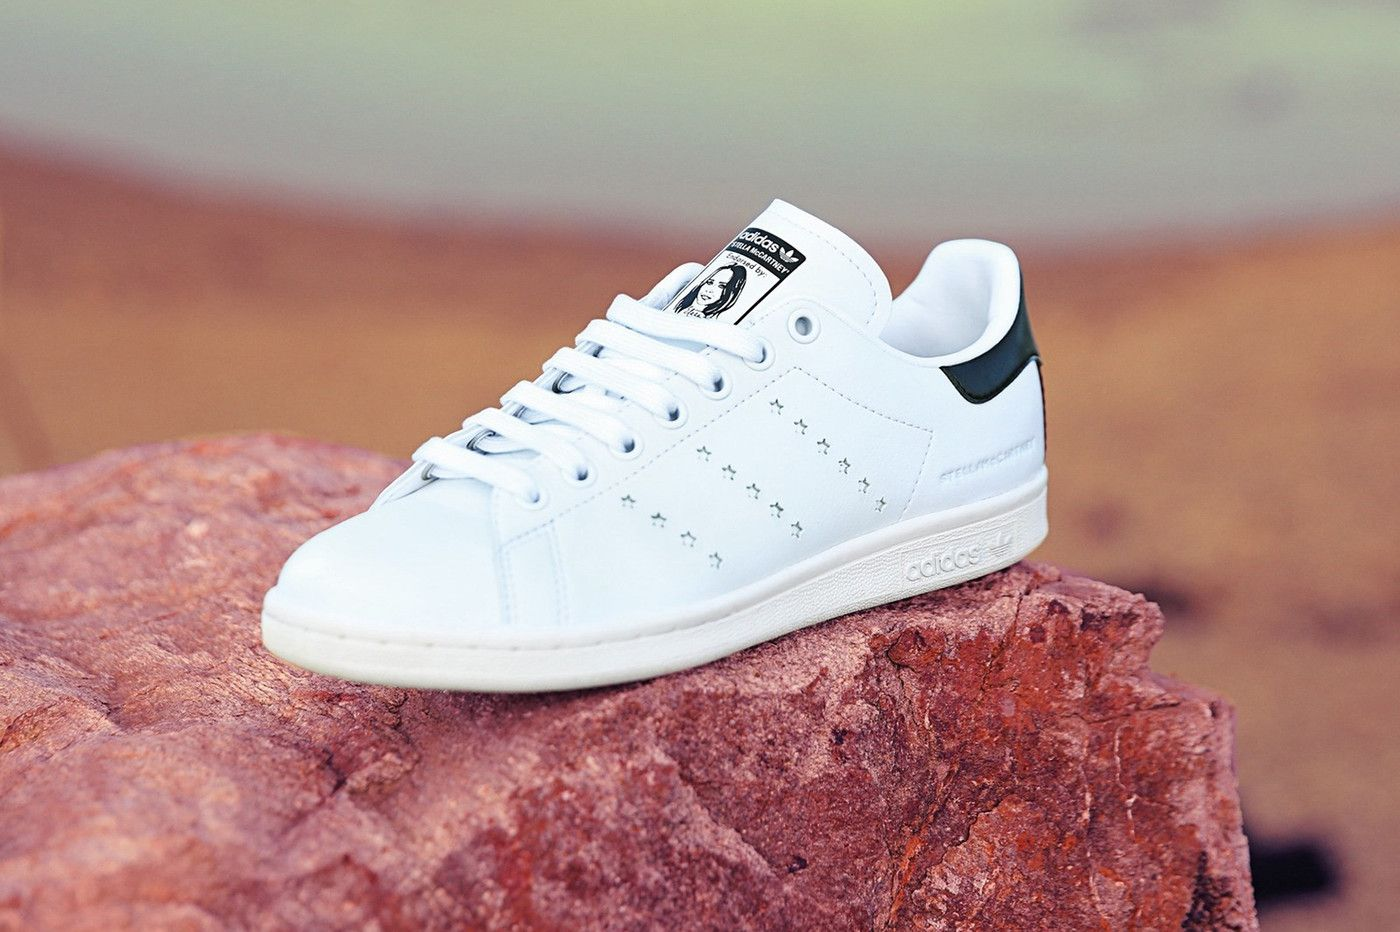 https_hypebeast.comimage201809adidas-stan-smith-stella-mccartney-vegetarian-01